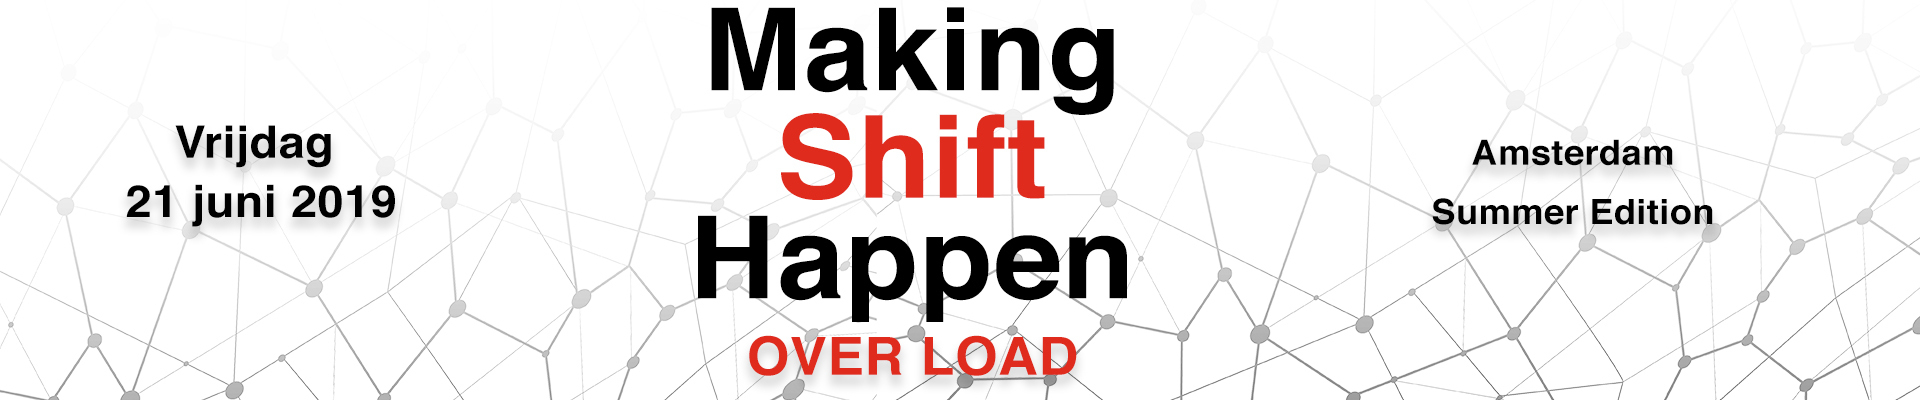 Making Shift Happen 2019 - Summer Edition - OVER LOAD